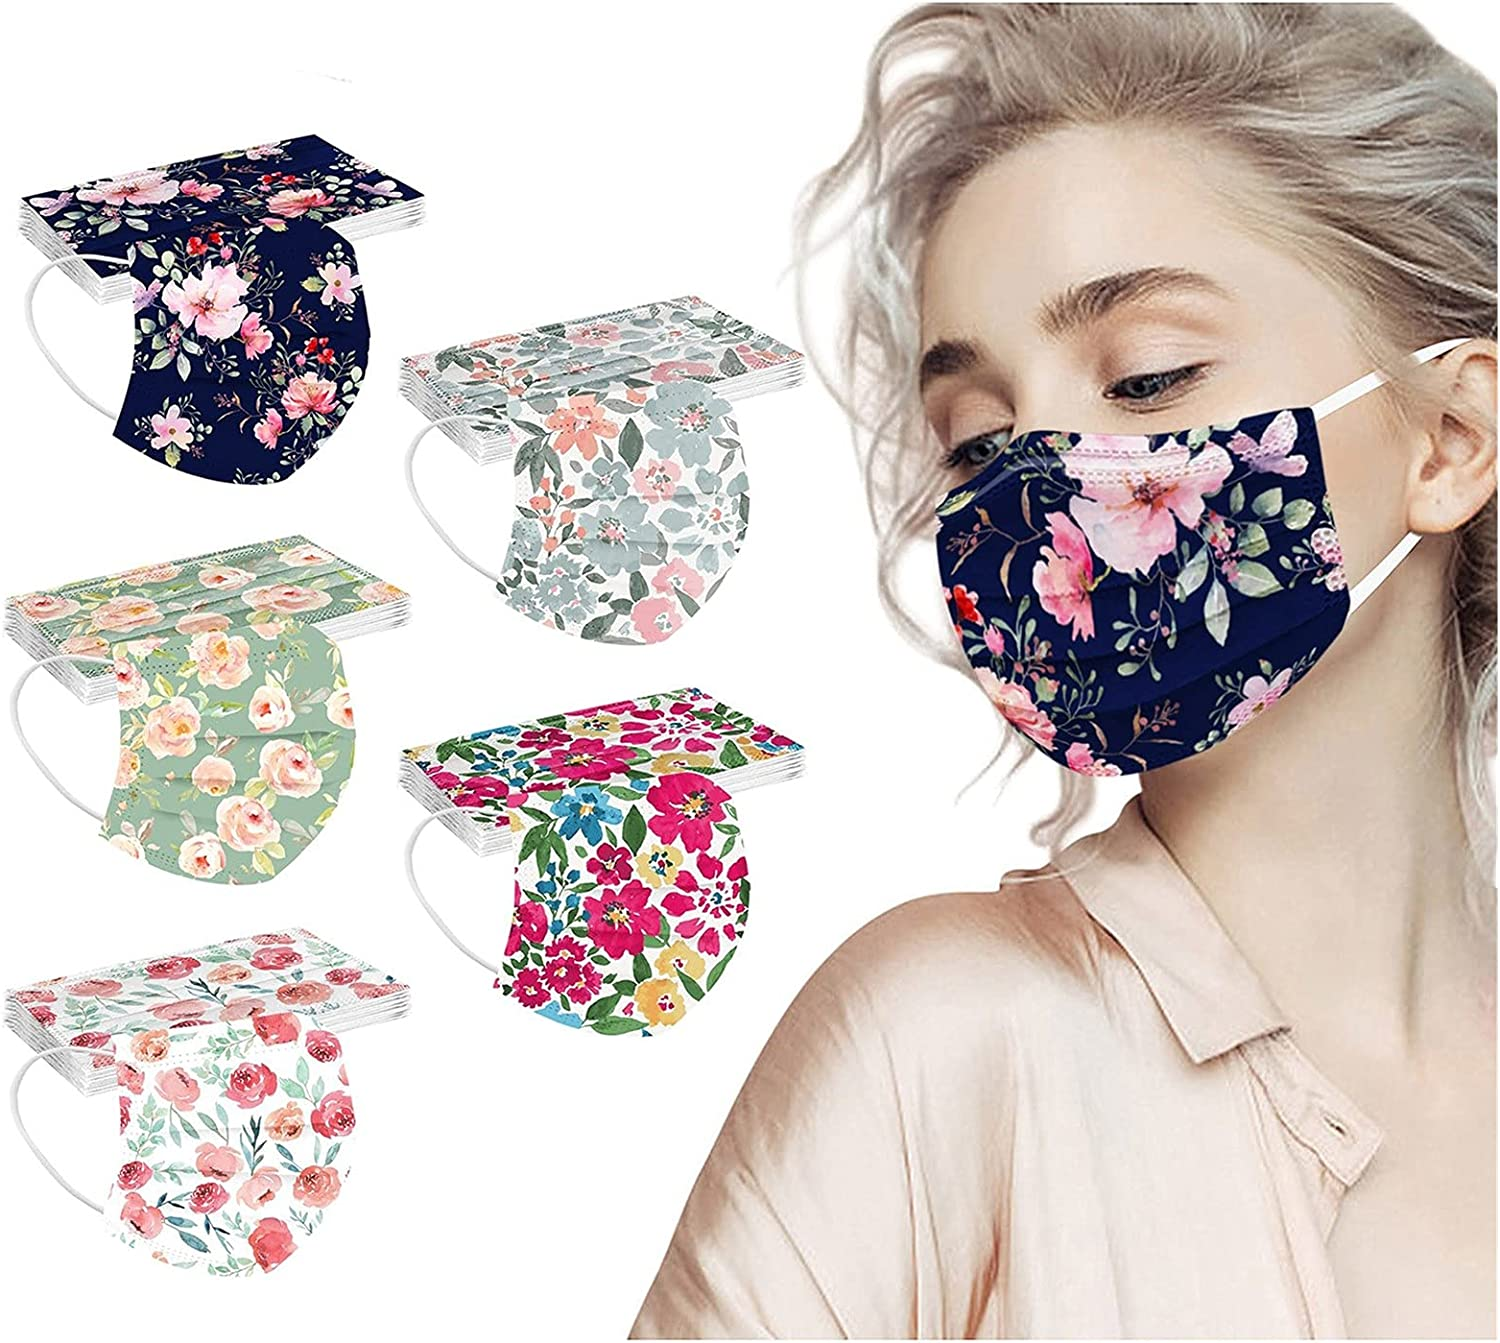 50 Pcs Adult Flower Be super welcome Face Masks F Facemask Face_mask Max 74% OFF - Disposable